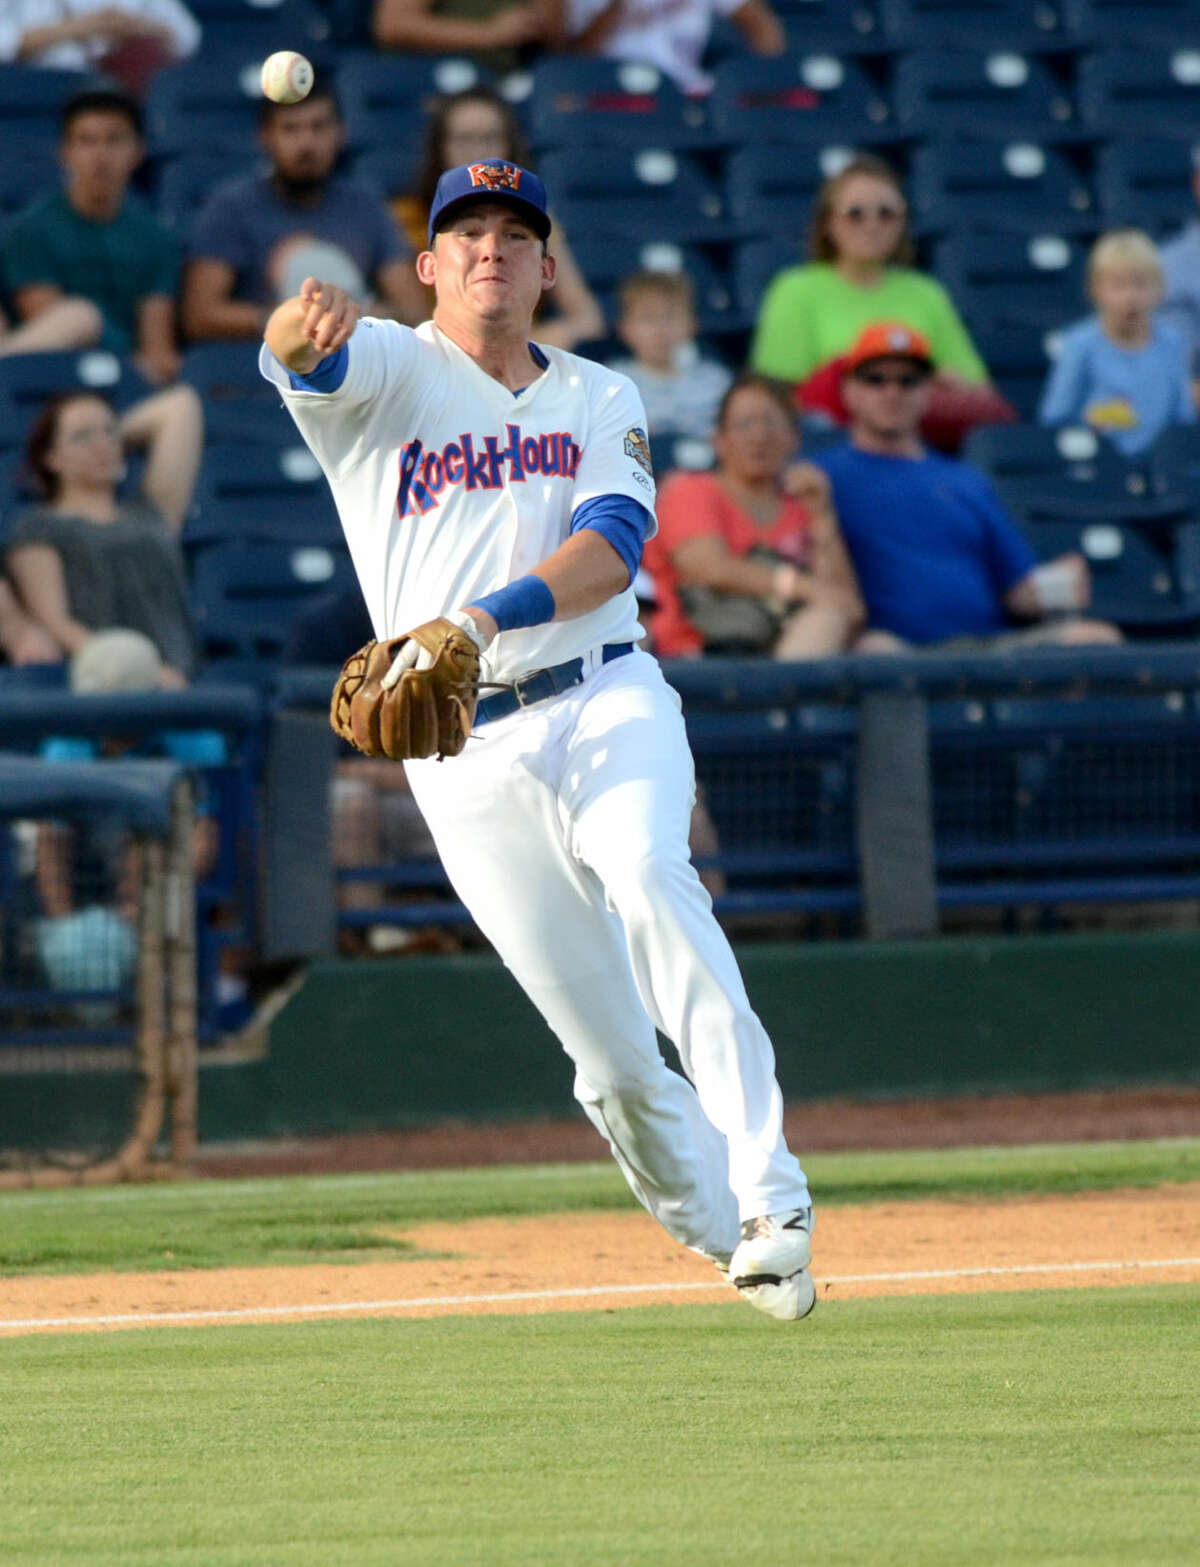 Rockhounds third baseman Ryon Healy fields the ball to first base for an out against Corpus Christi on Tuesday, June 9, 2015, at Security Bank Ballpark. James Durbin/Reporter-Telegram